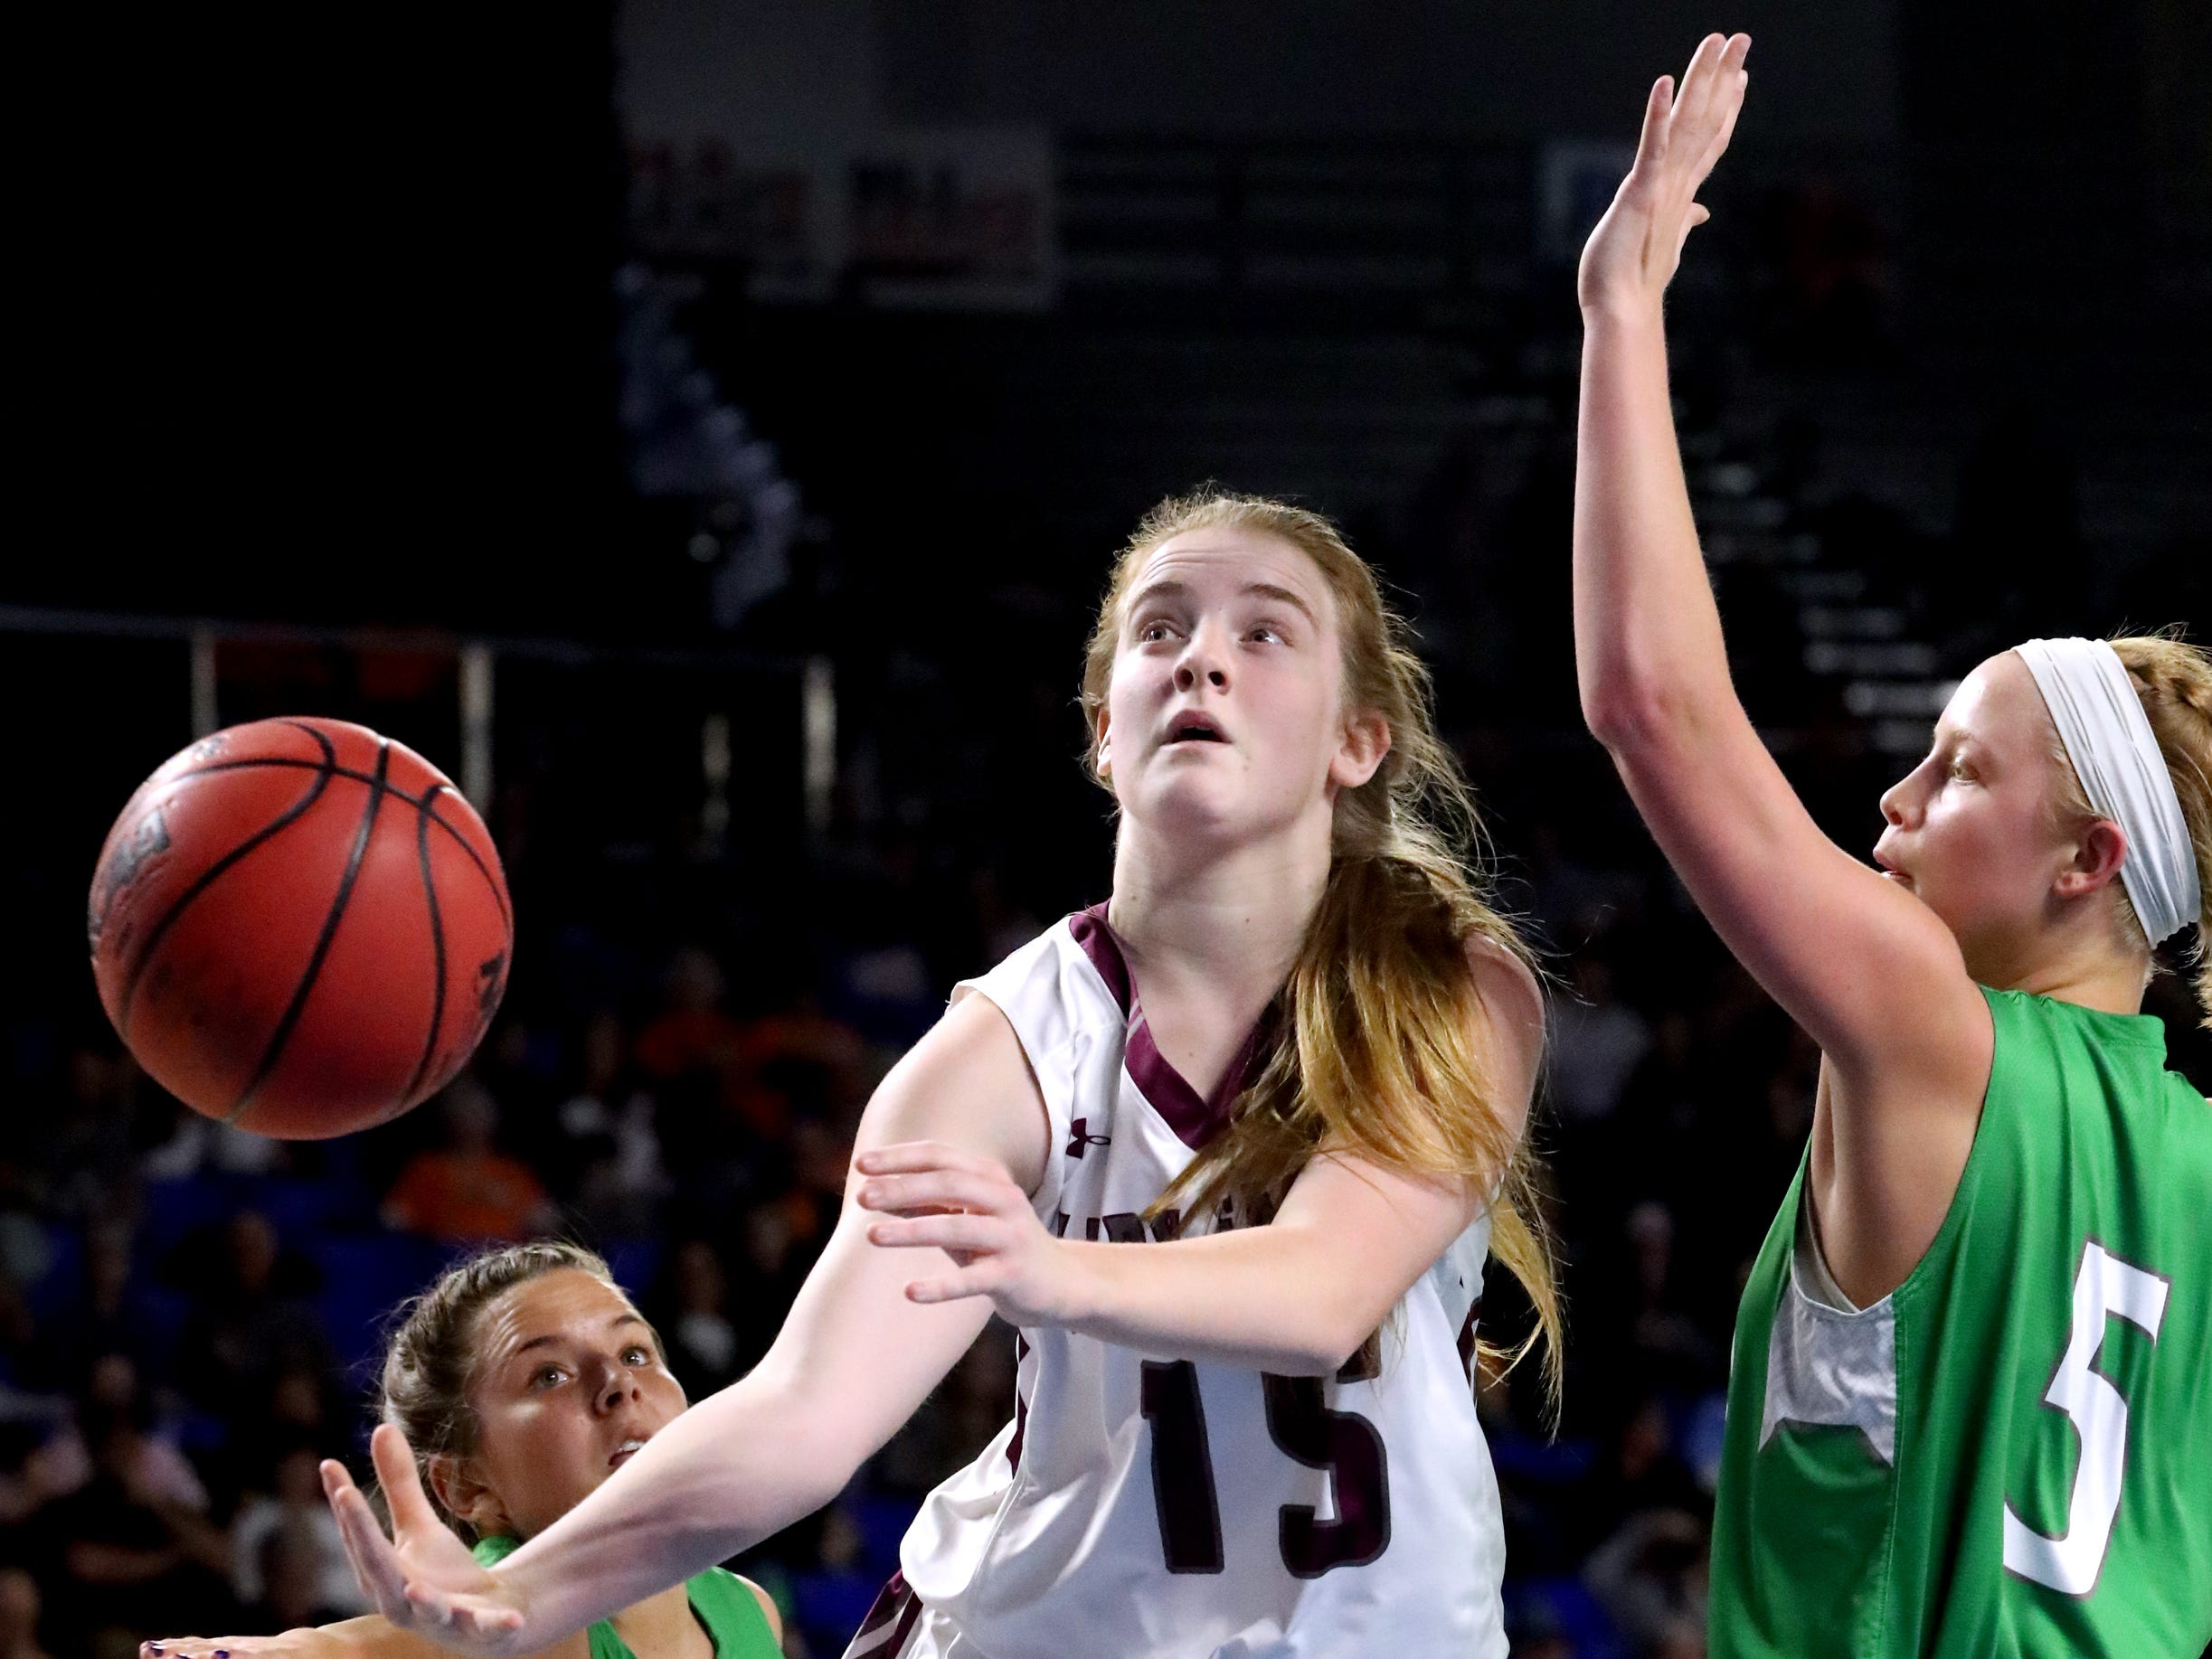 Eagleville's Makayla Moates (15) shoots the ball as Midway's Paige Bacon (5) guards her during the quarterfinal round of the TSSAA Div. 1 Class A Girls State Tournament, on Thursday, March 7, 2019, at Murphy Center in Murfreesboro, Tenn.